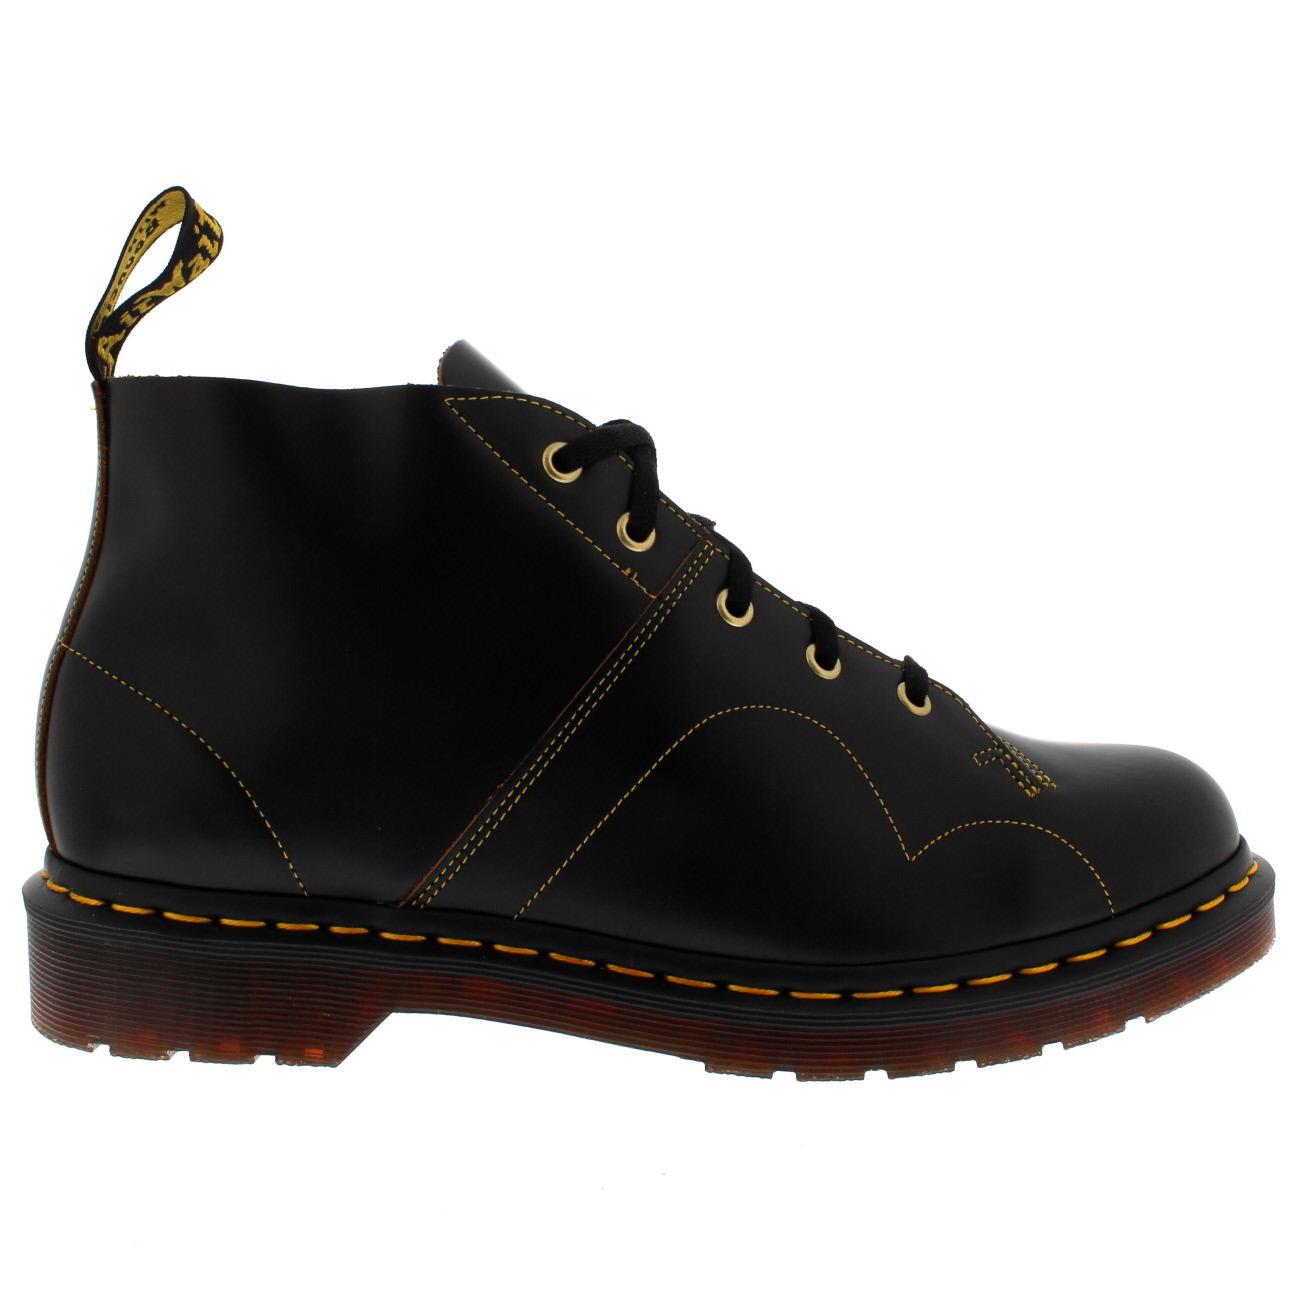 Unisex Adults Dr Martens Church Doc Martens Fashion Casual Flat Boots All Sizes